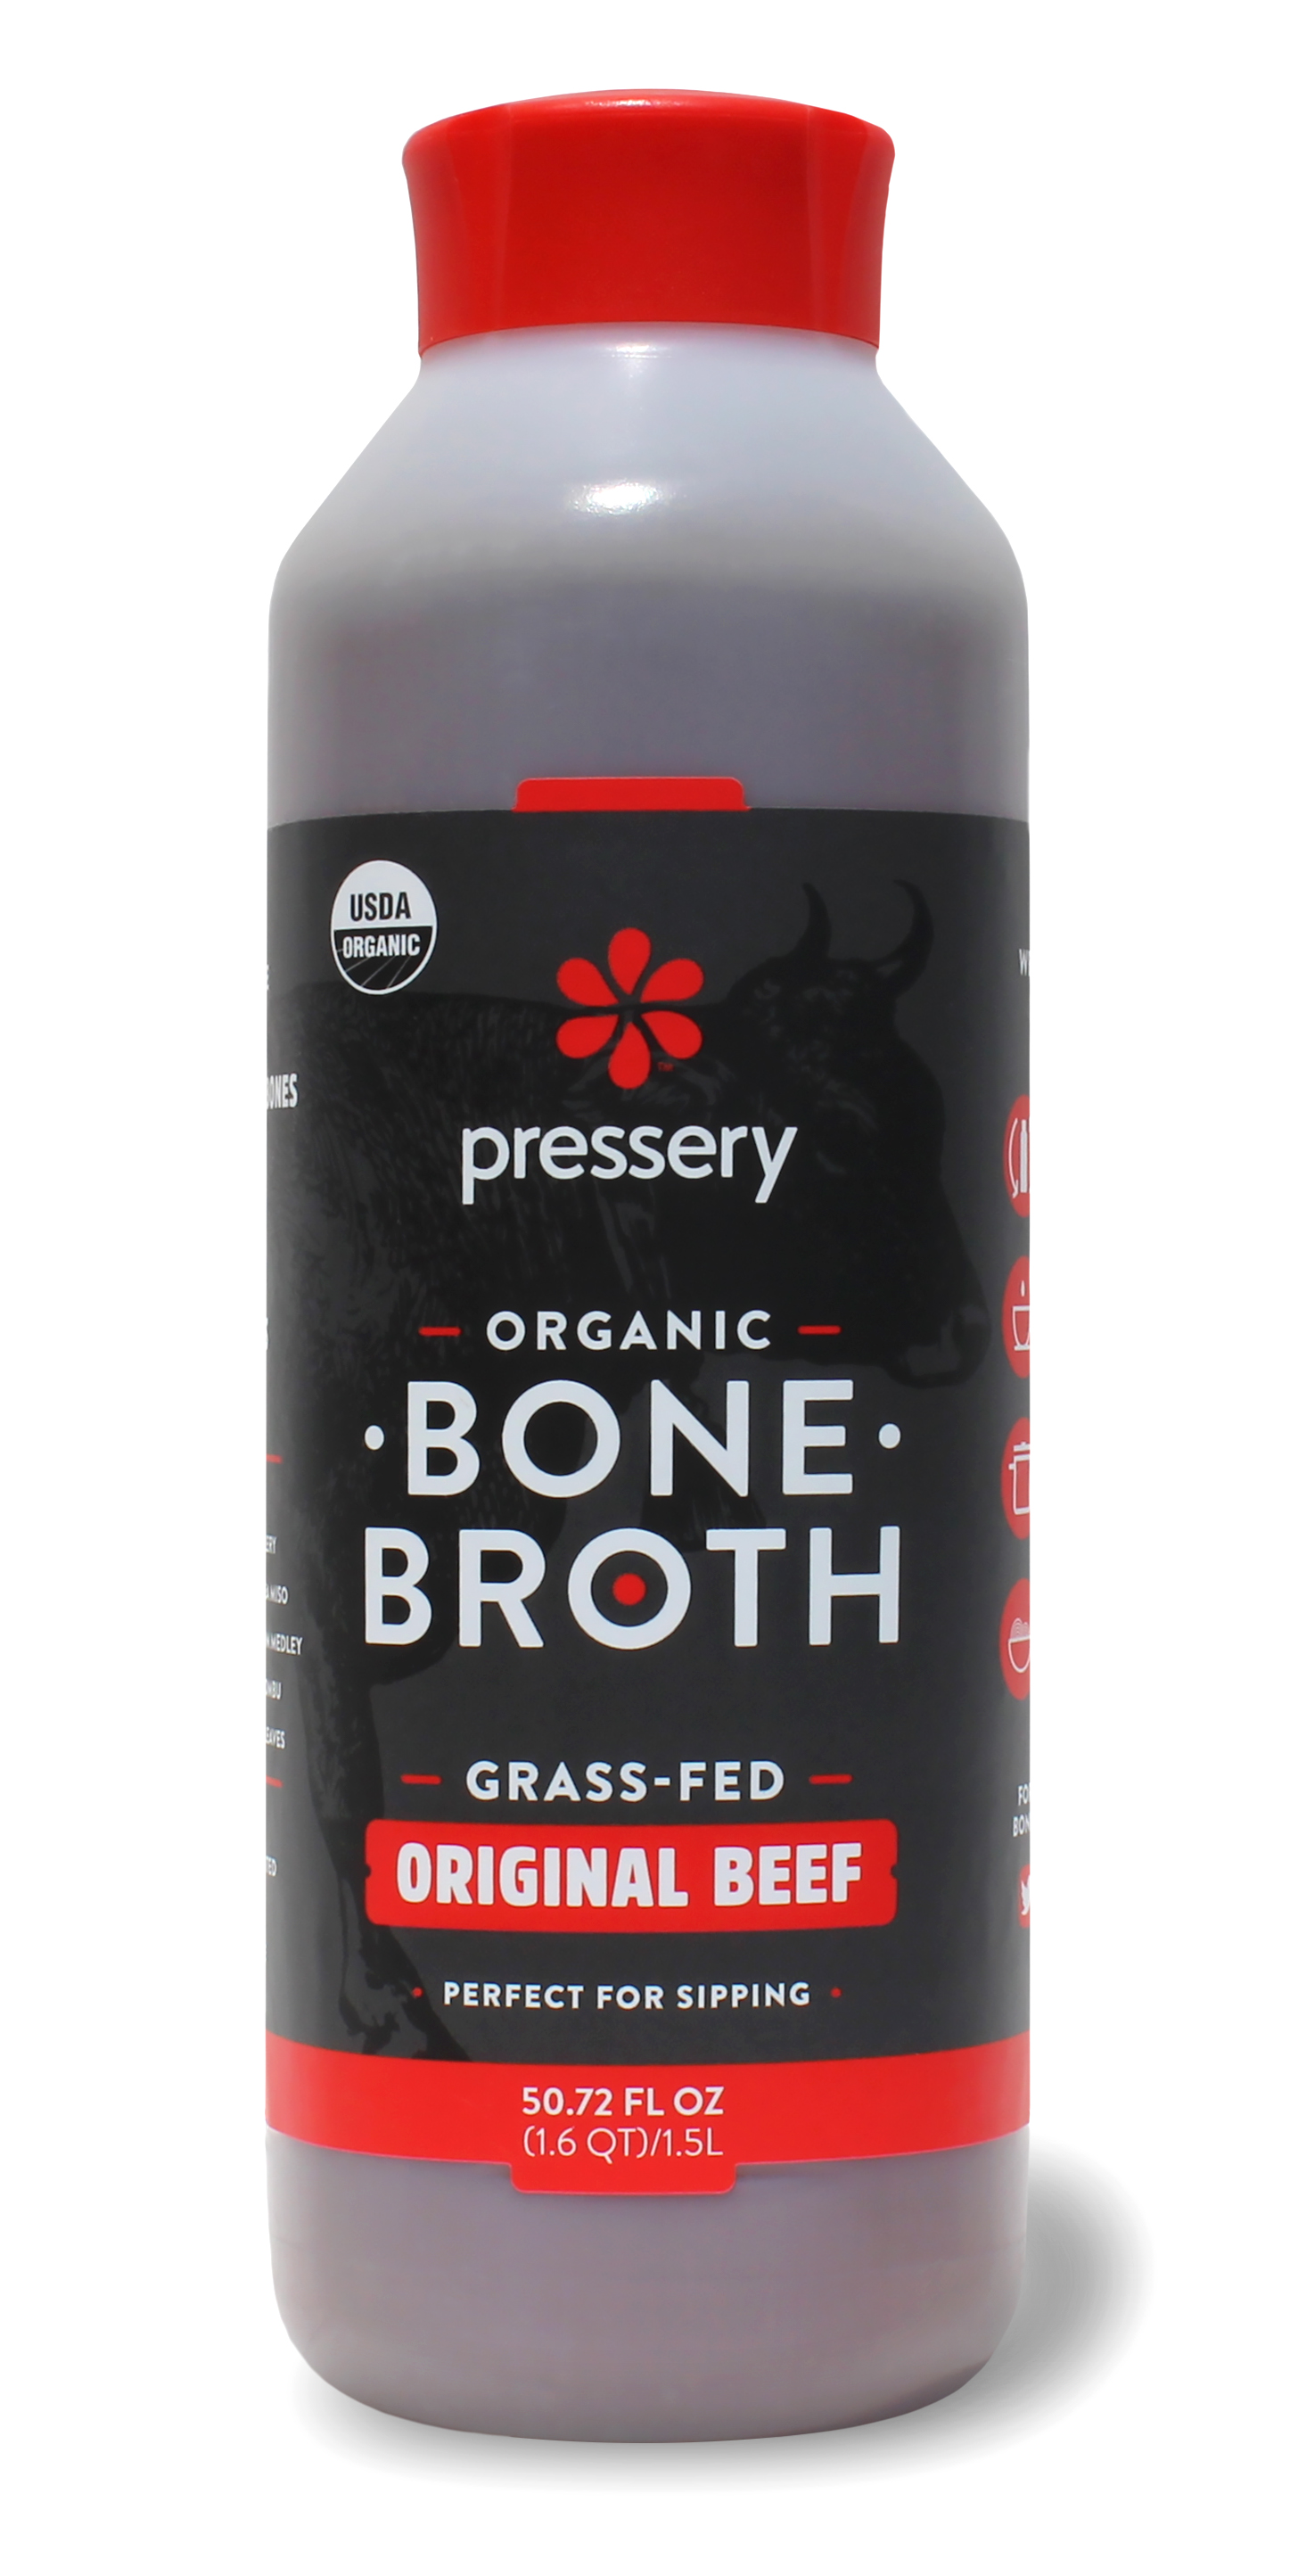 ORIGINAL BEEF - CERTIFIED USDA ORGANIC, MADE WITH GRASS-FED BEEF BONES